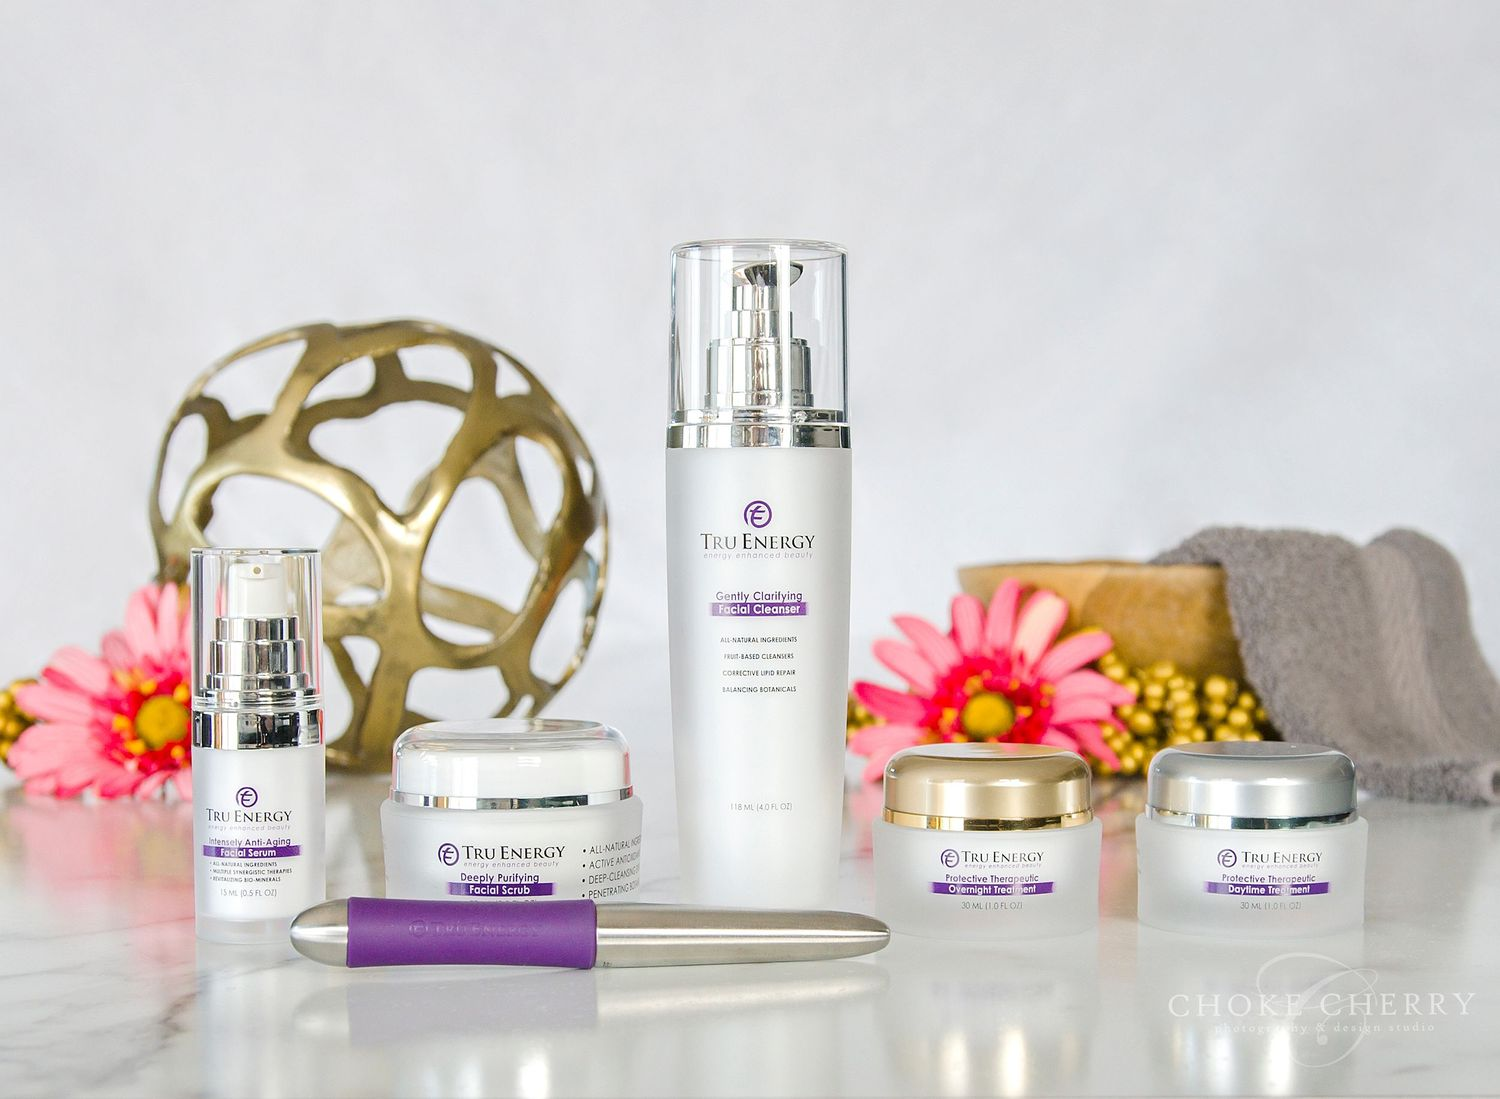 Product photography of high-end luxury skin care line bottles and face wand